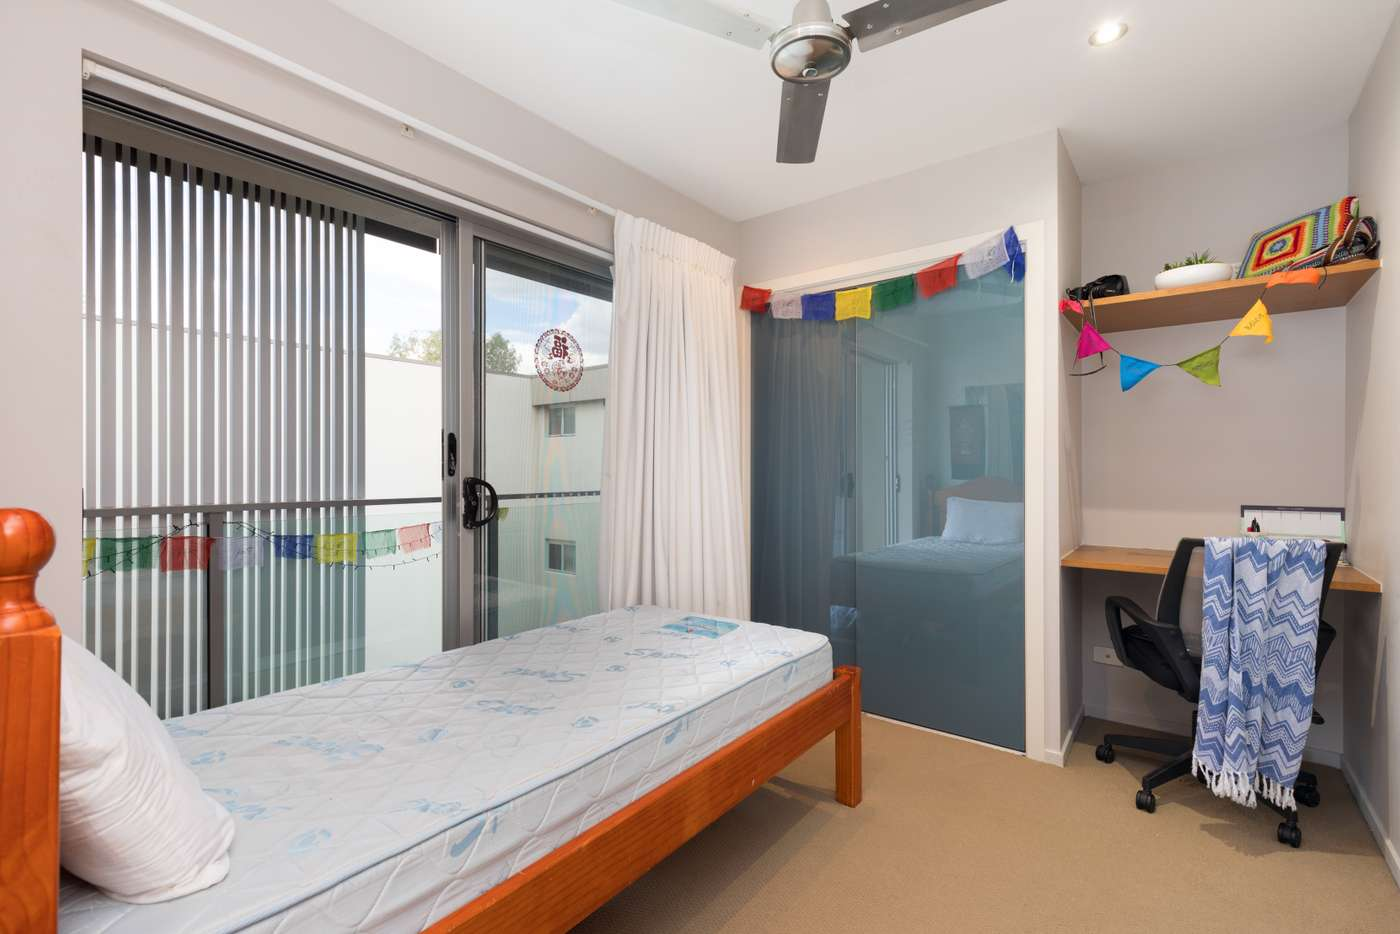 Sixth view of Homely apartment listing, 8/81 Maryvale Street, Toowong QLD 4066